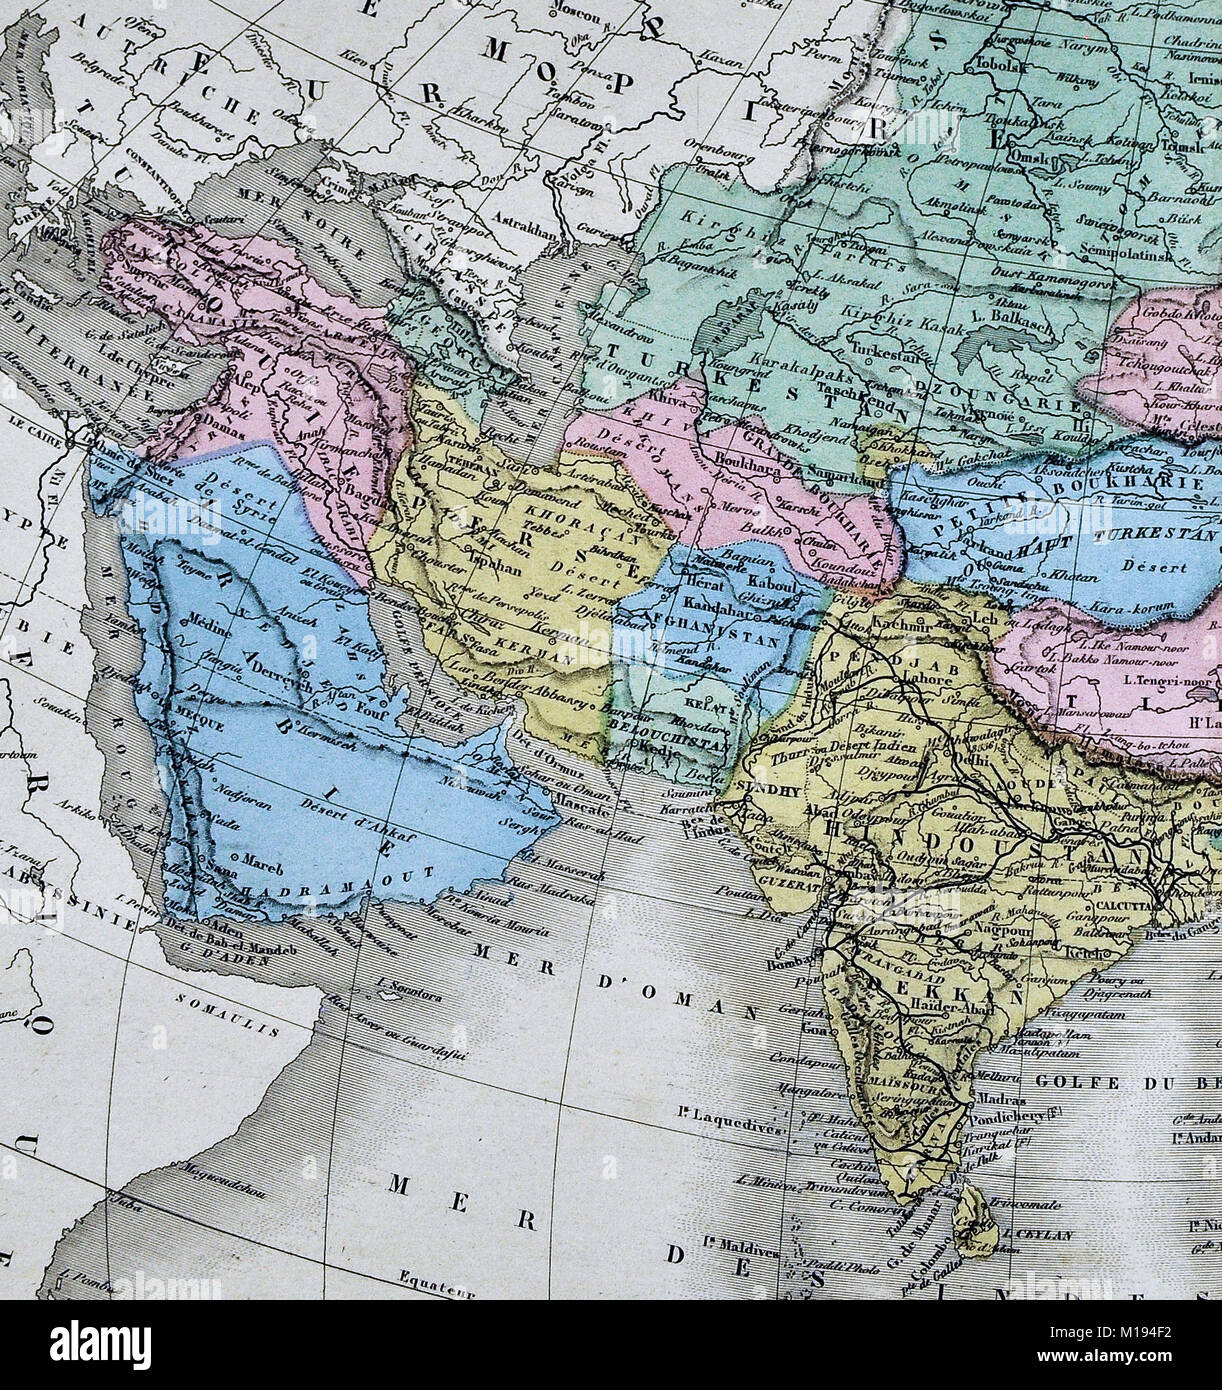 1877 migeon map western asia china japan india arabia mongolia 1877 migeon map western asia china japan india arabia mongolia siberia tibet nepal gumiabroncs Image collections